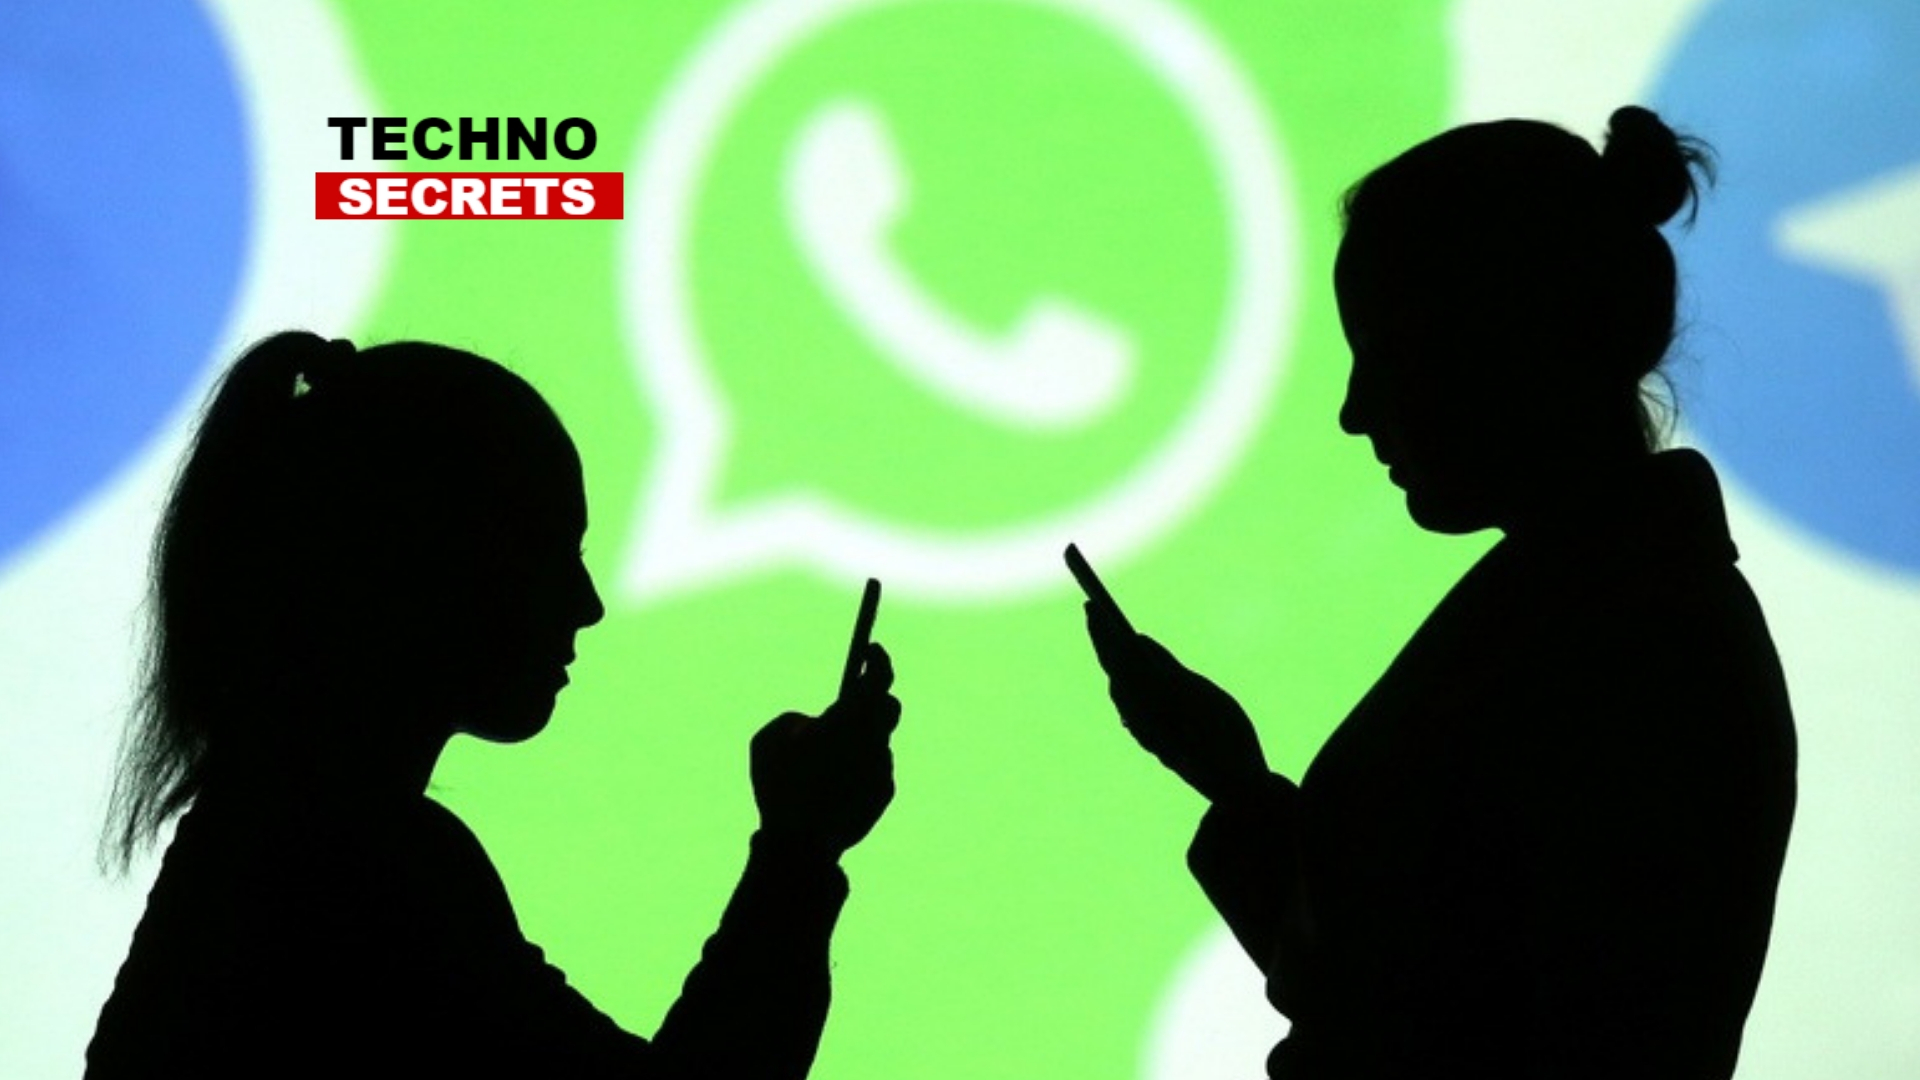 Whatsapp To Stop Fake Messages by forwarding Limit To Five Chats: Report